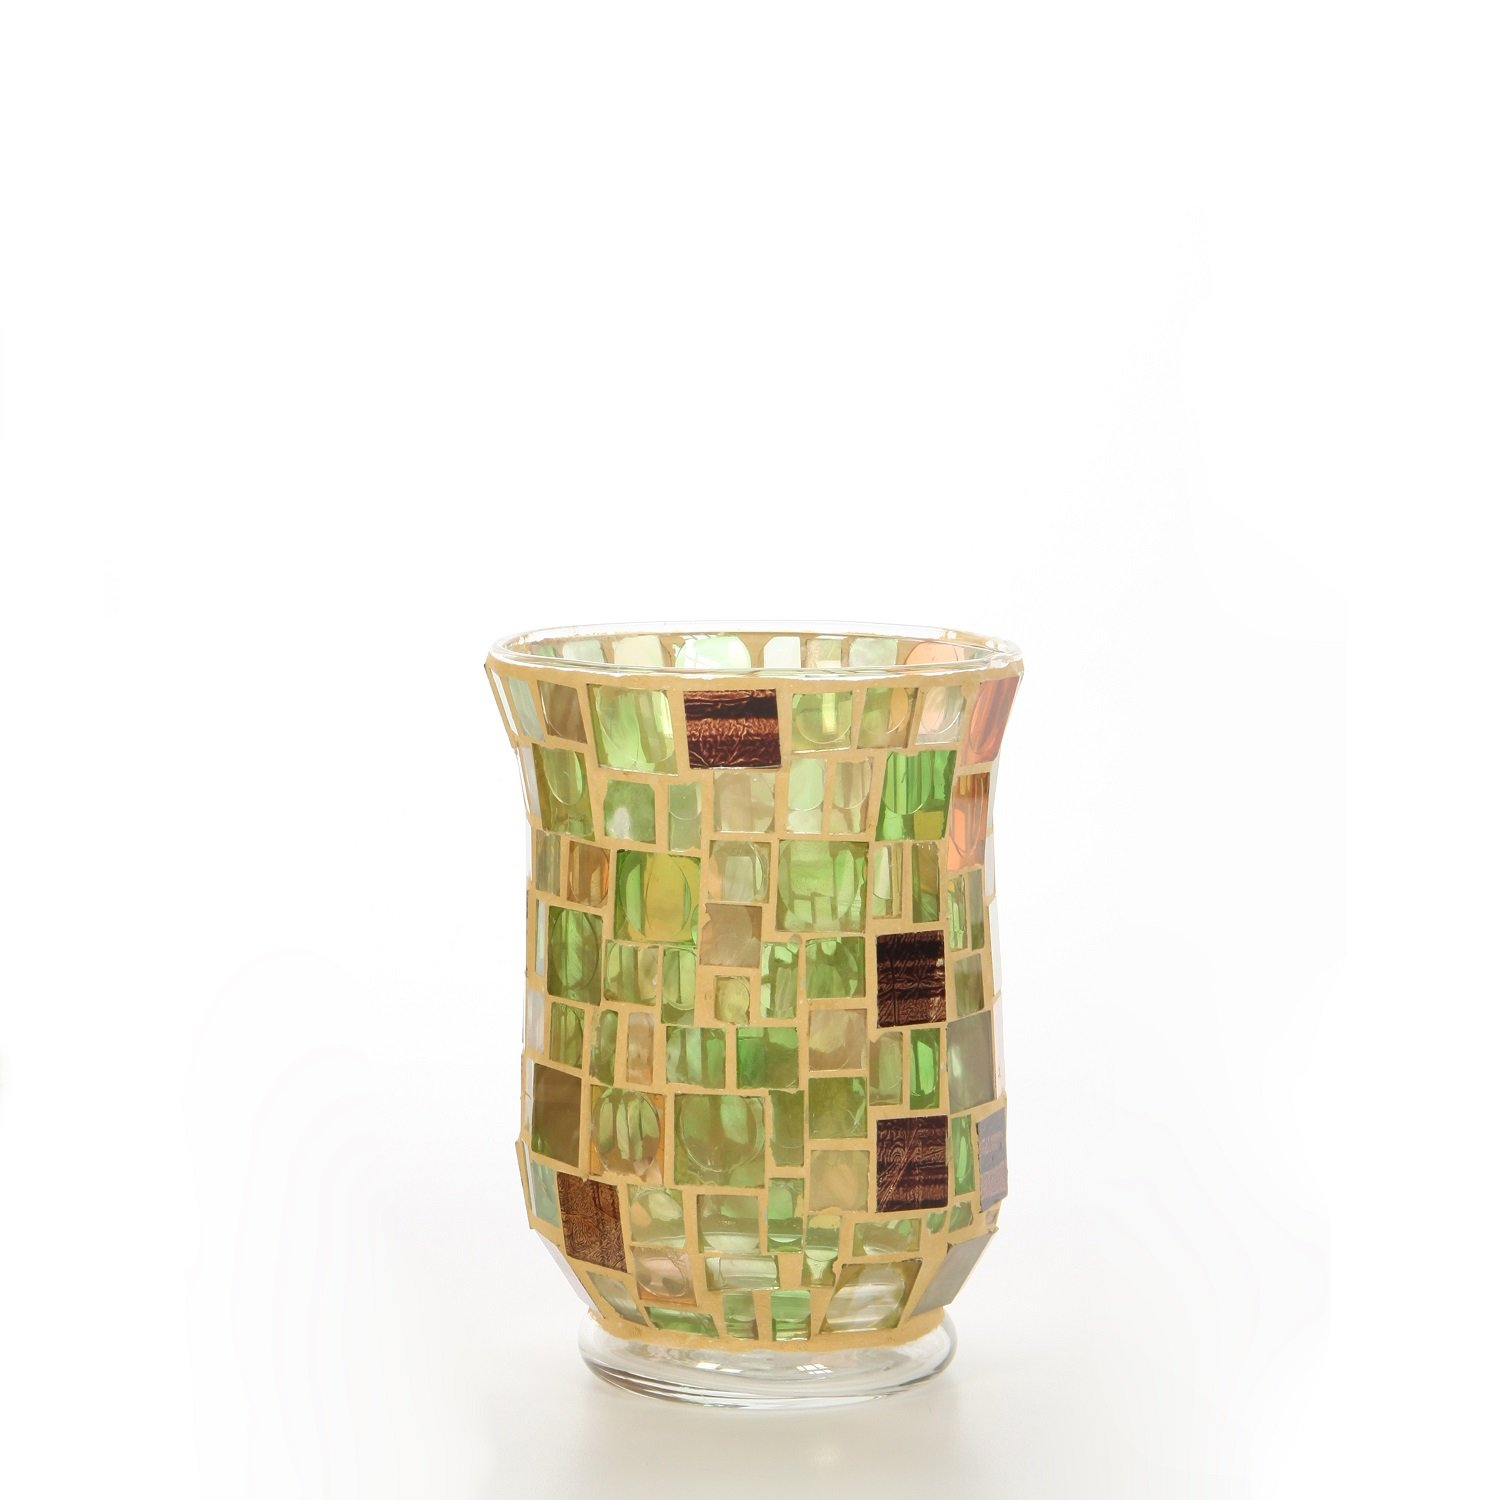 Hosley's Mosaic Cream Glass Hurricane Candle Holder, Lantern / Sleeve- 5 High. Wonderful Accent Piece for Coffee or Side Tables. Ideal Gift for Weddings, Home, Events P1. HG Global